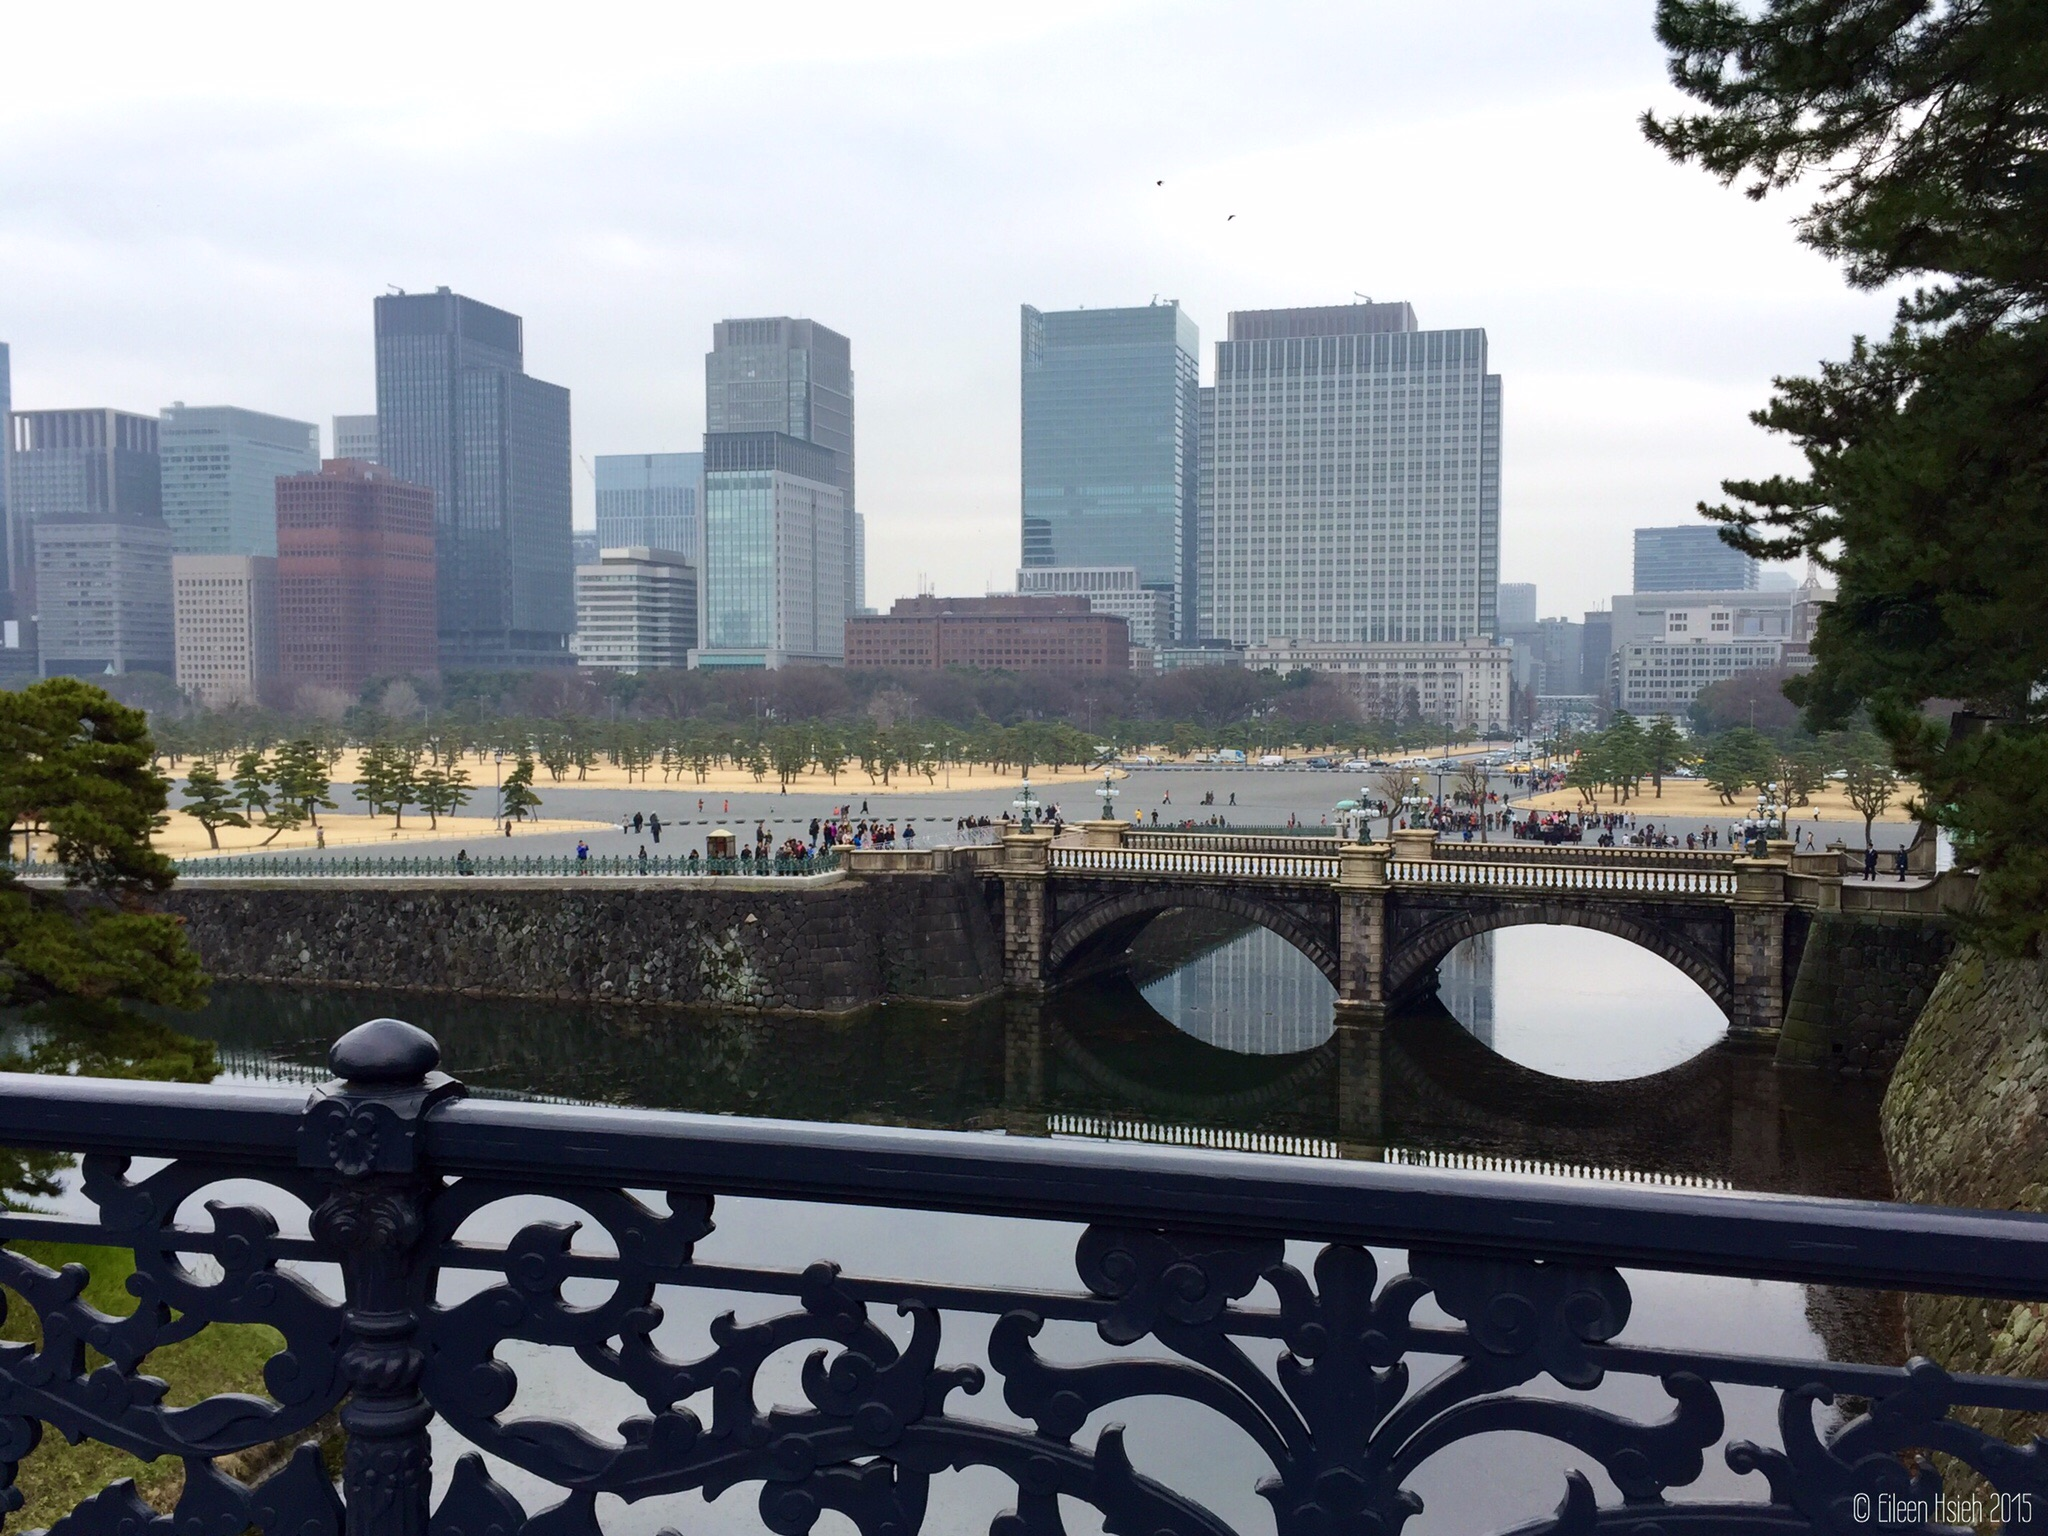 從皇居瞭望對外開放的外苑。View of the public palace grounds from the Imperial Residence.  © Eileen Hsieh